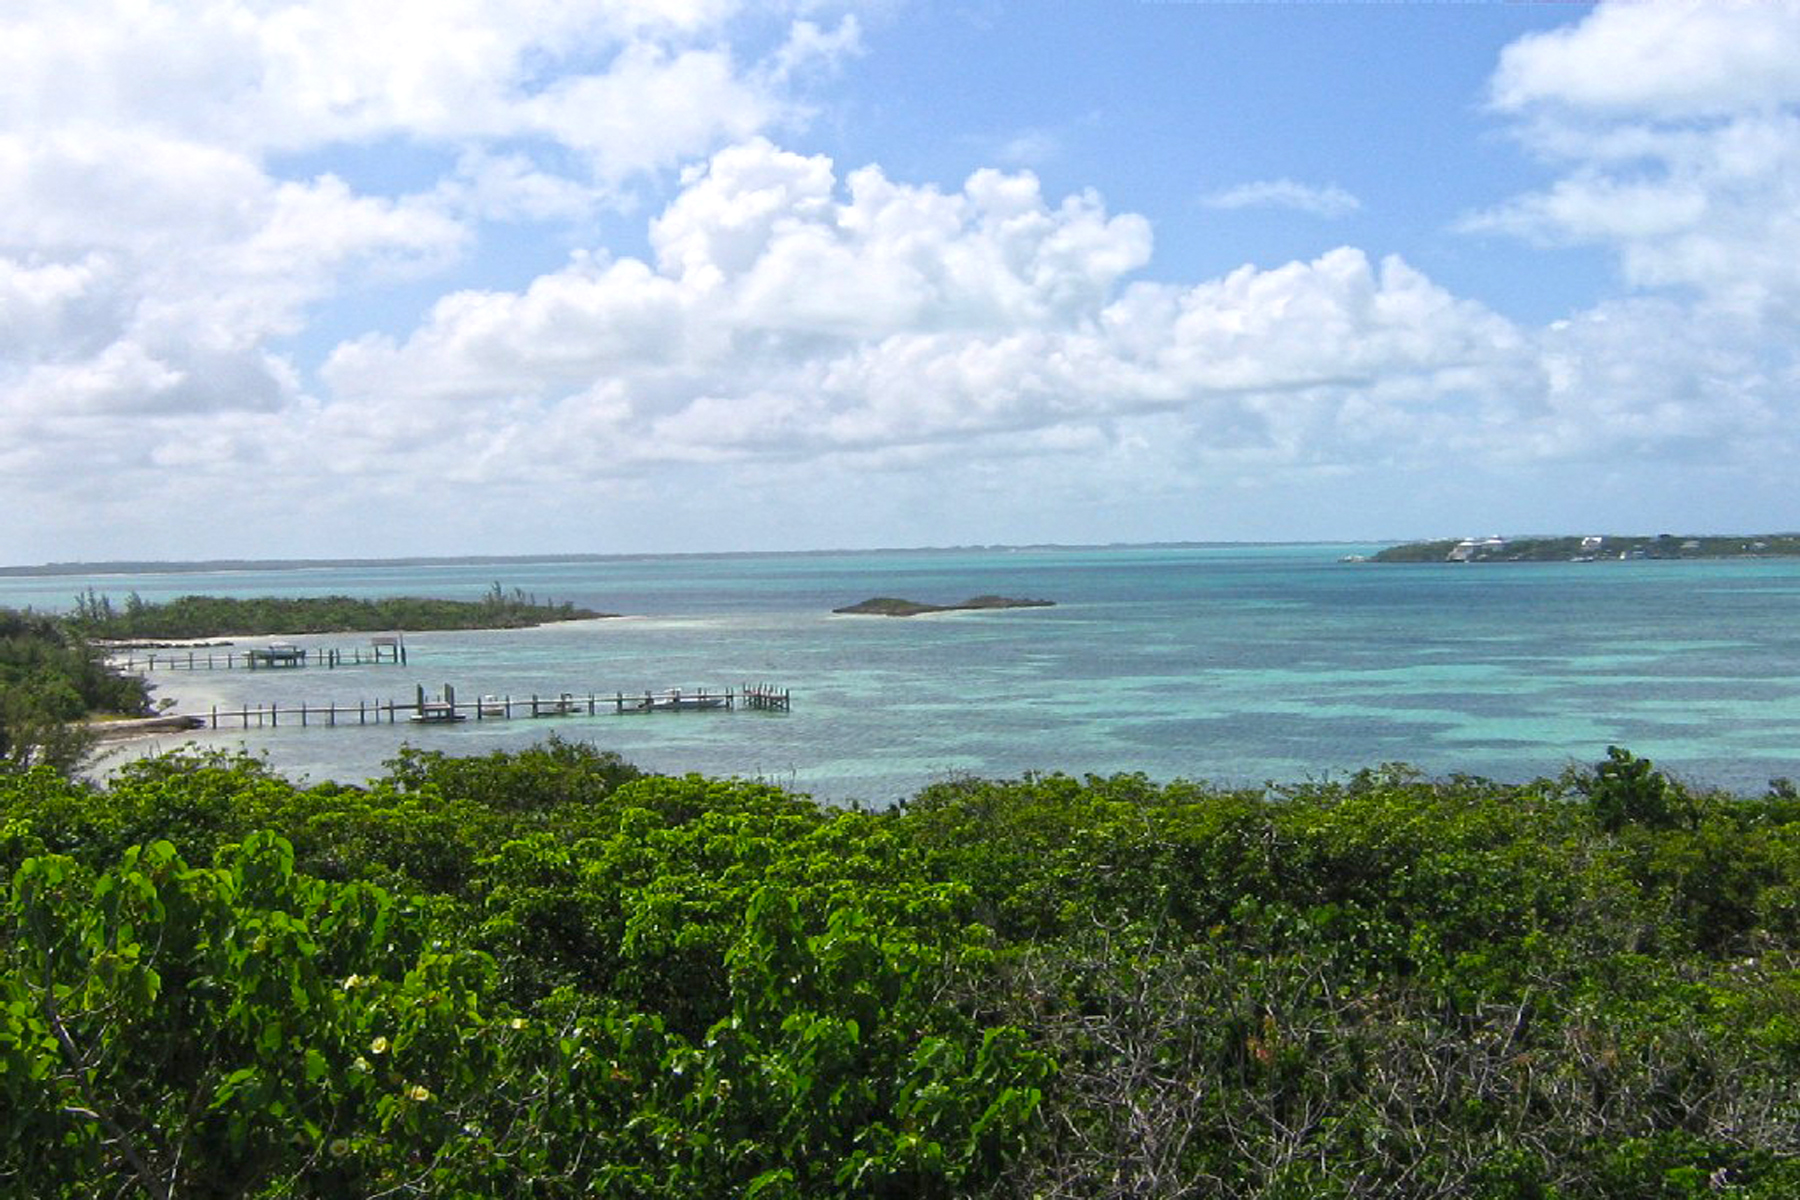 Land for Sale at Tilloo Cay Lot #26 Tilloo Cay, Abaco Bahamas